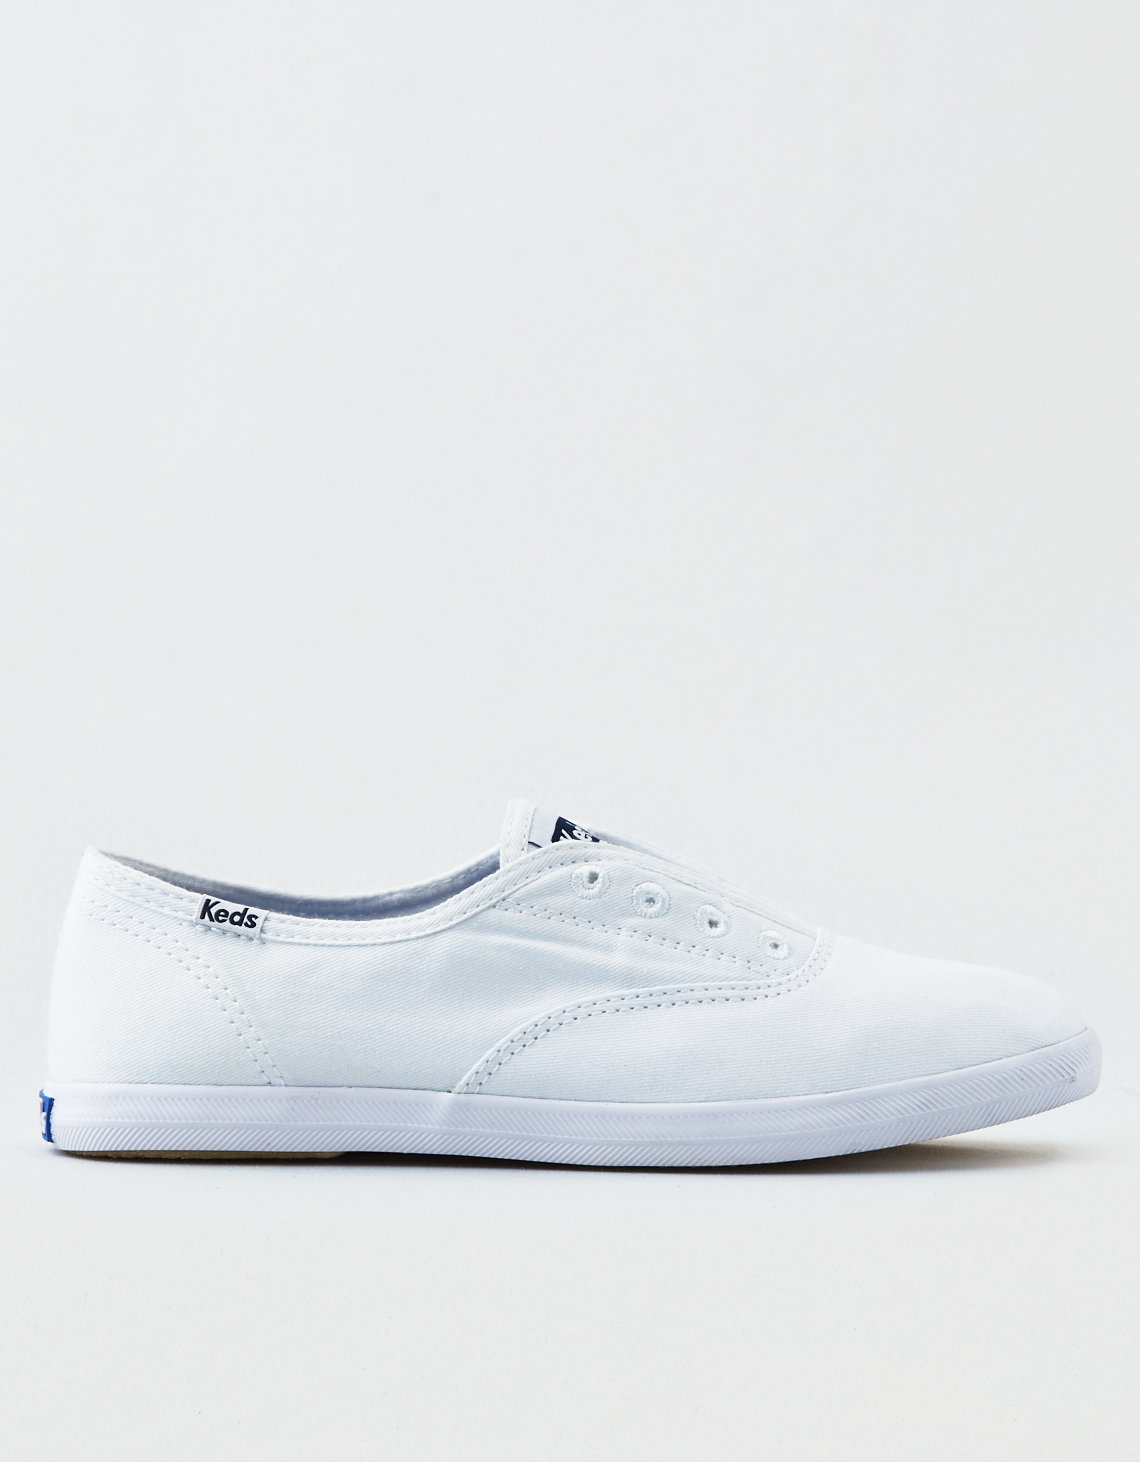 2f2bcedc1a0 Keds Chillax Slip On Sneaker